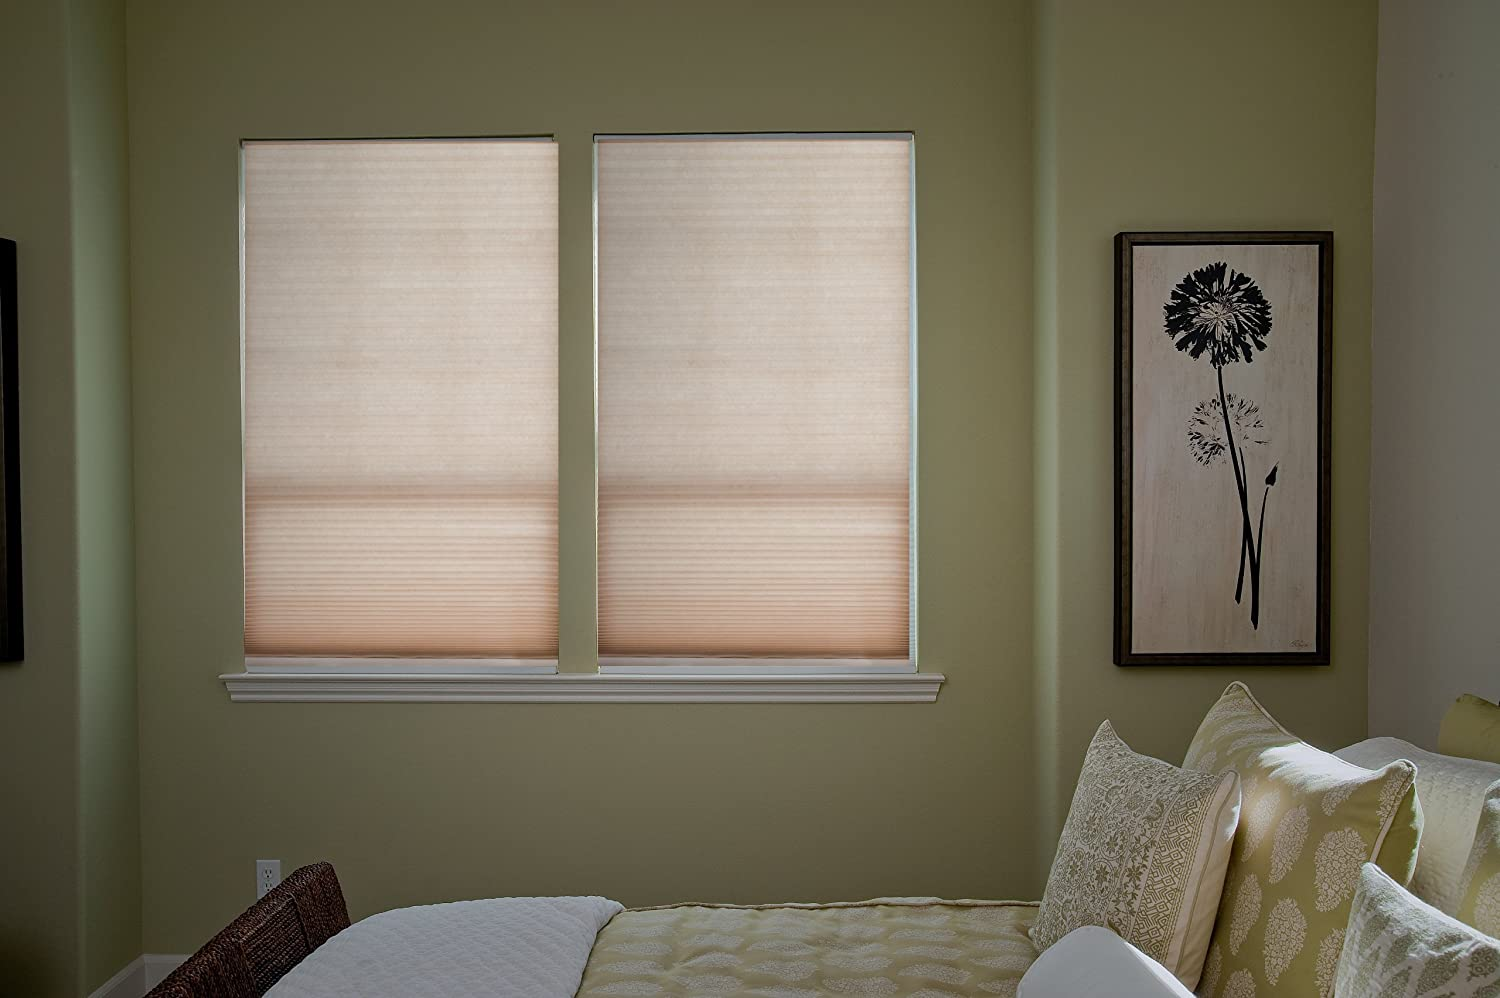 36 inch window blinds - Amazon Com Easy Lift 48 Inch By 64 Inch Trim At Home Fits Windows 28 Inches To 48 Inches Wide Cordless Honeycomb Cellular Shade Light Filtering